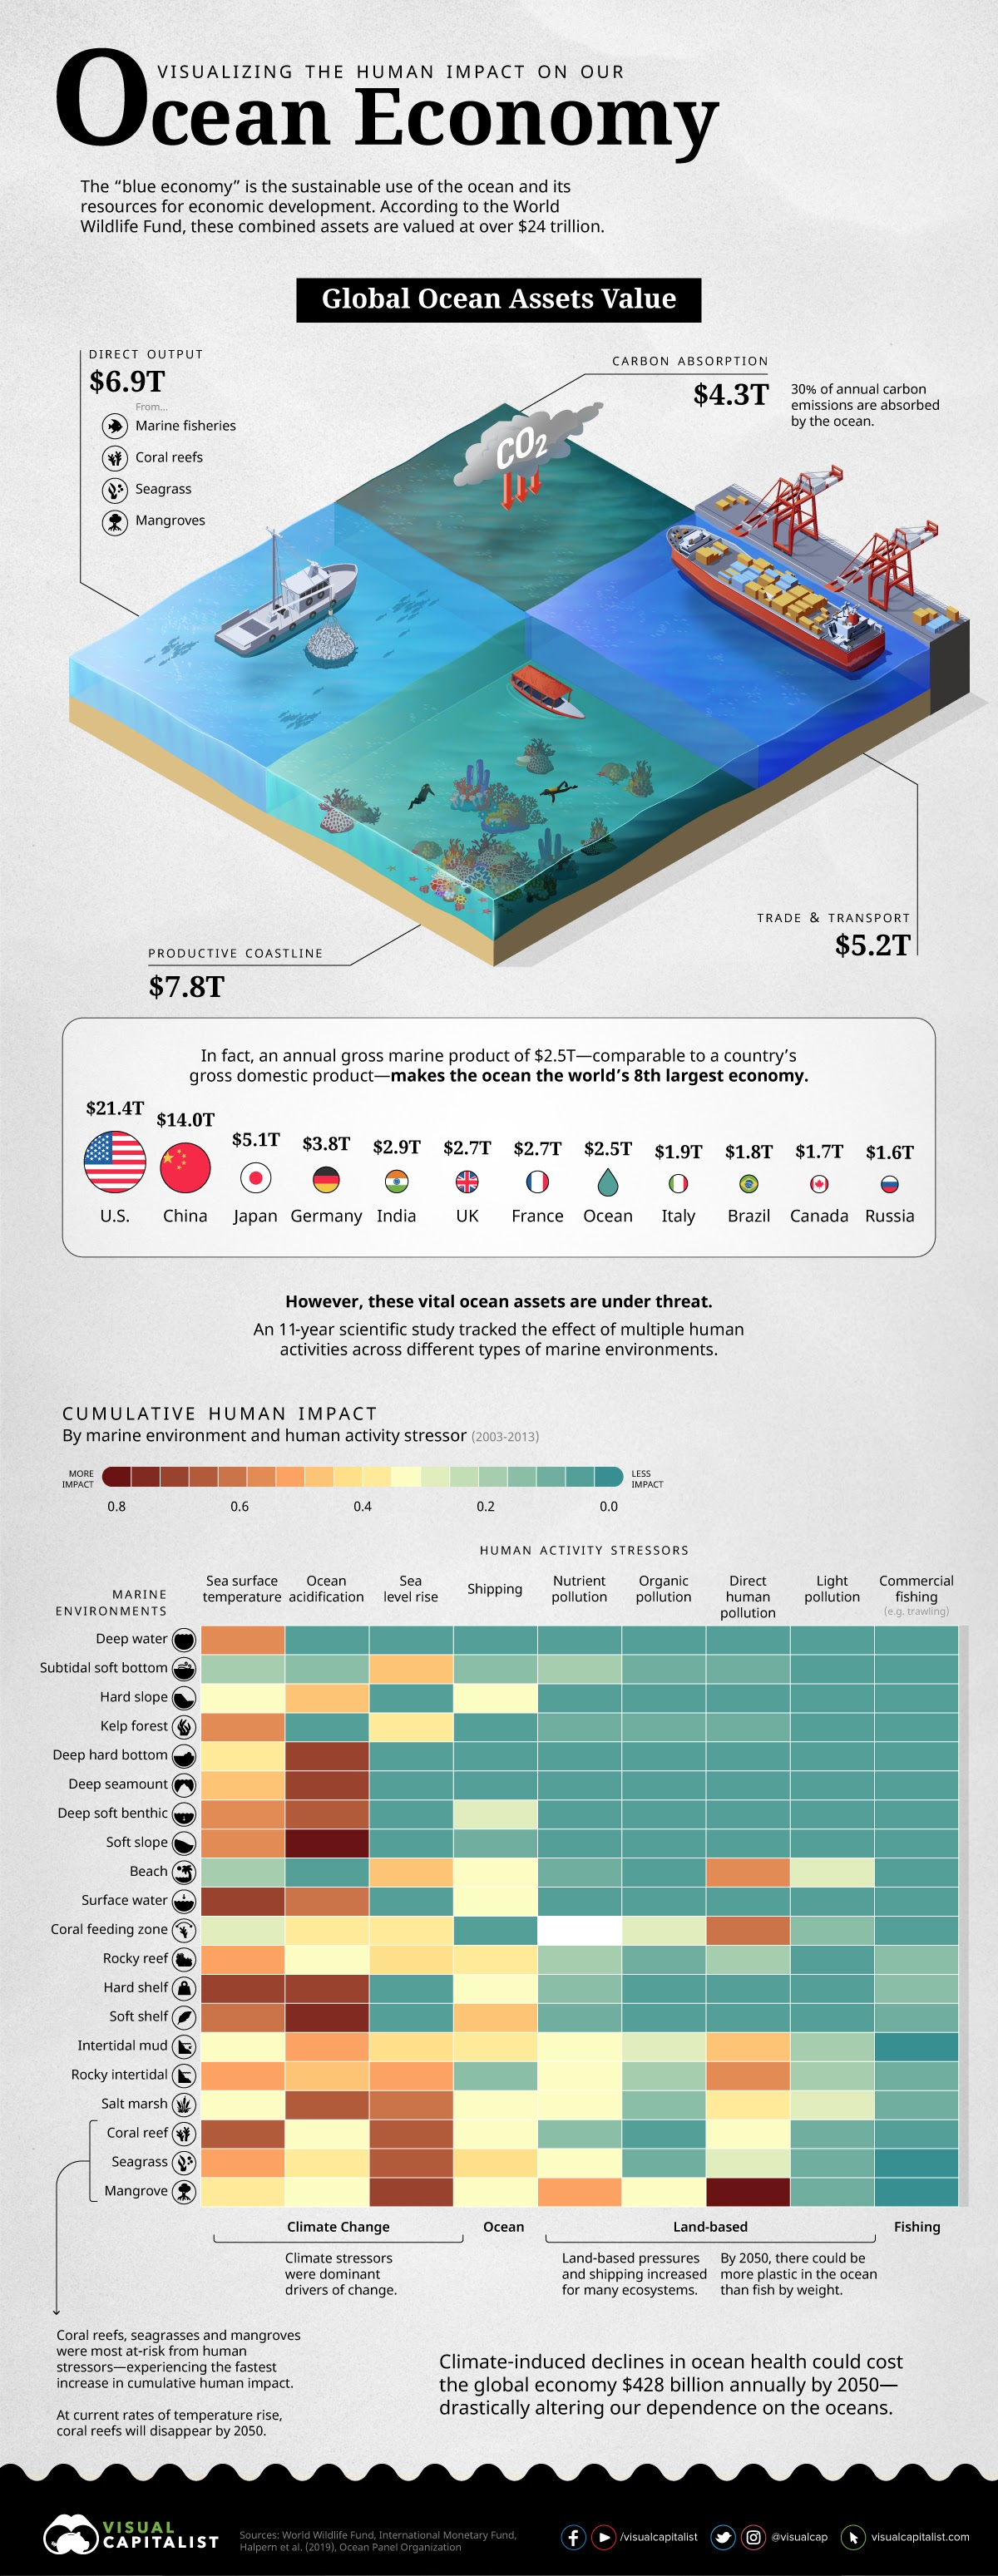 Visualizing the Human Impact on the Ocean Economy #infographic